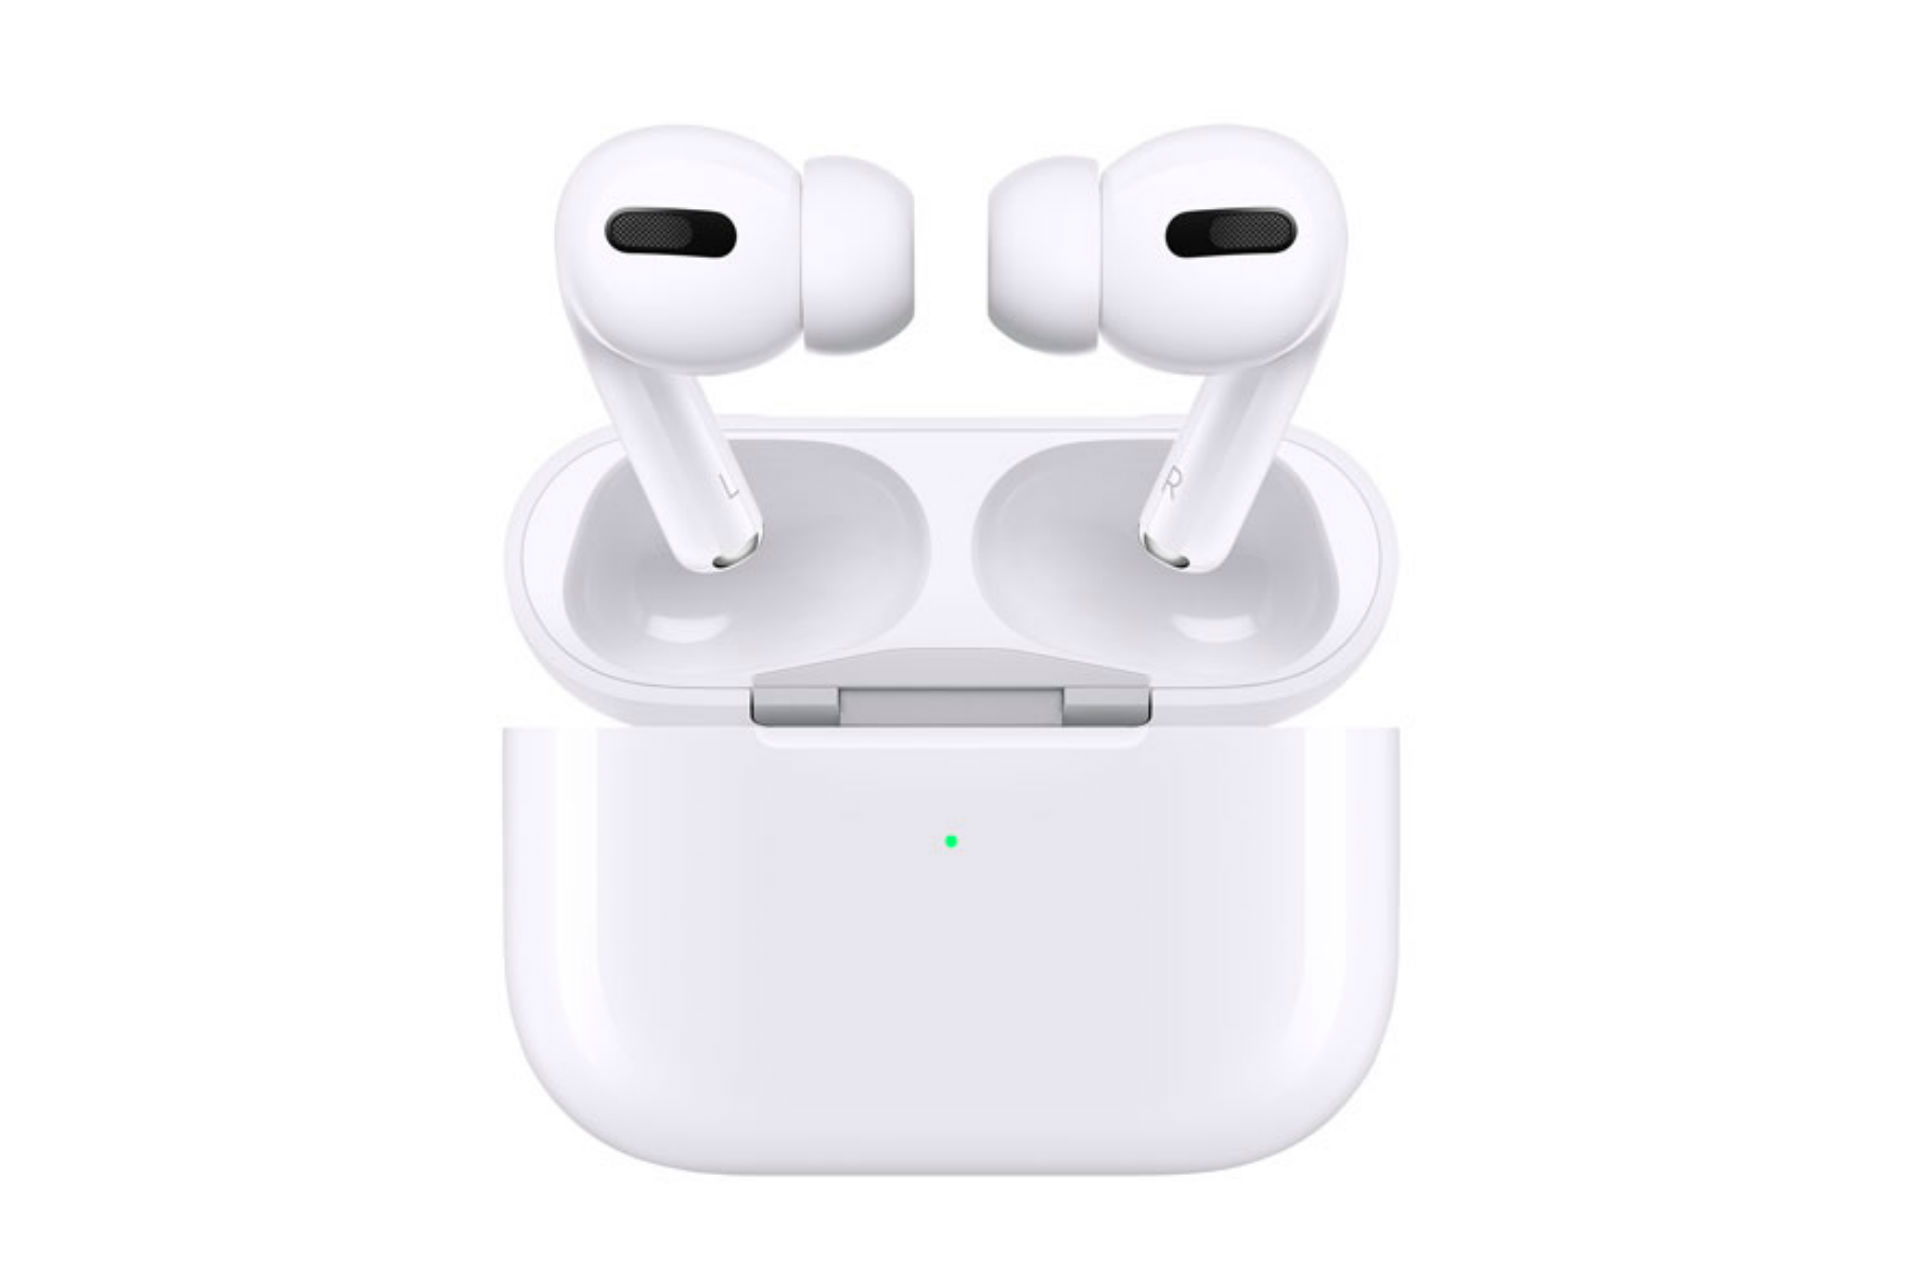 Apple AirPods Pro in-ear noise cancelling headphones